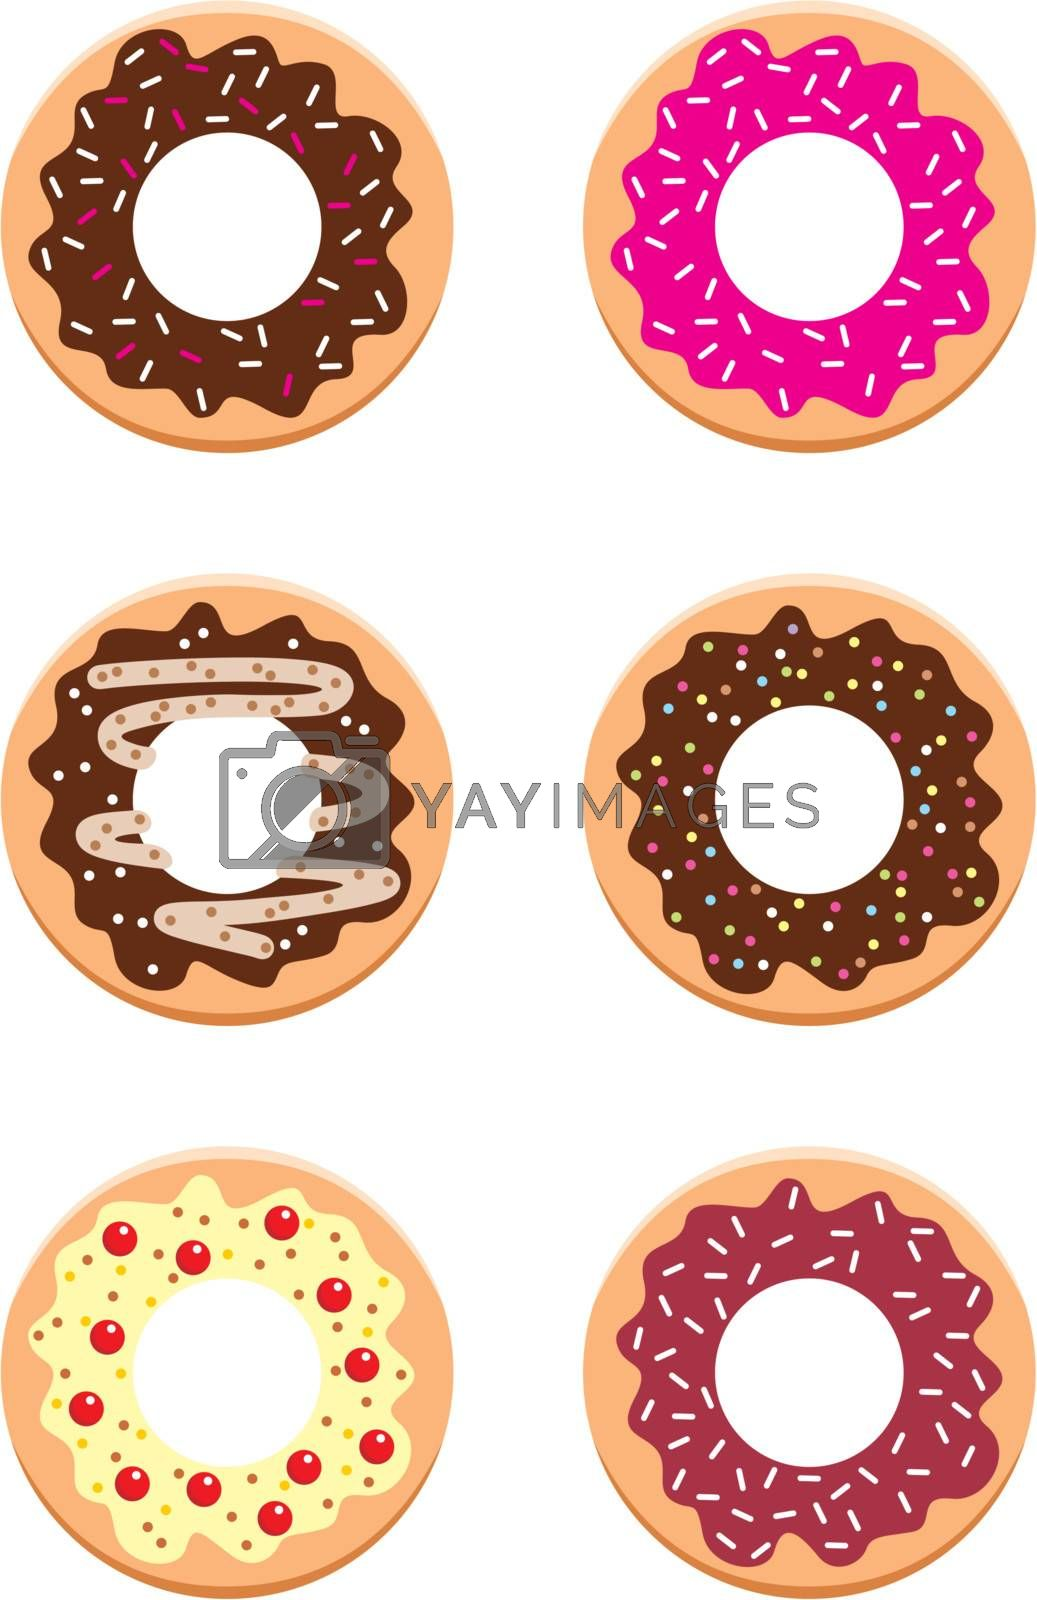 Images of different donuts on a white background.